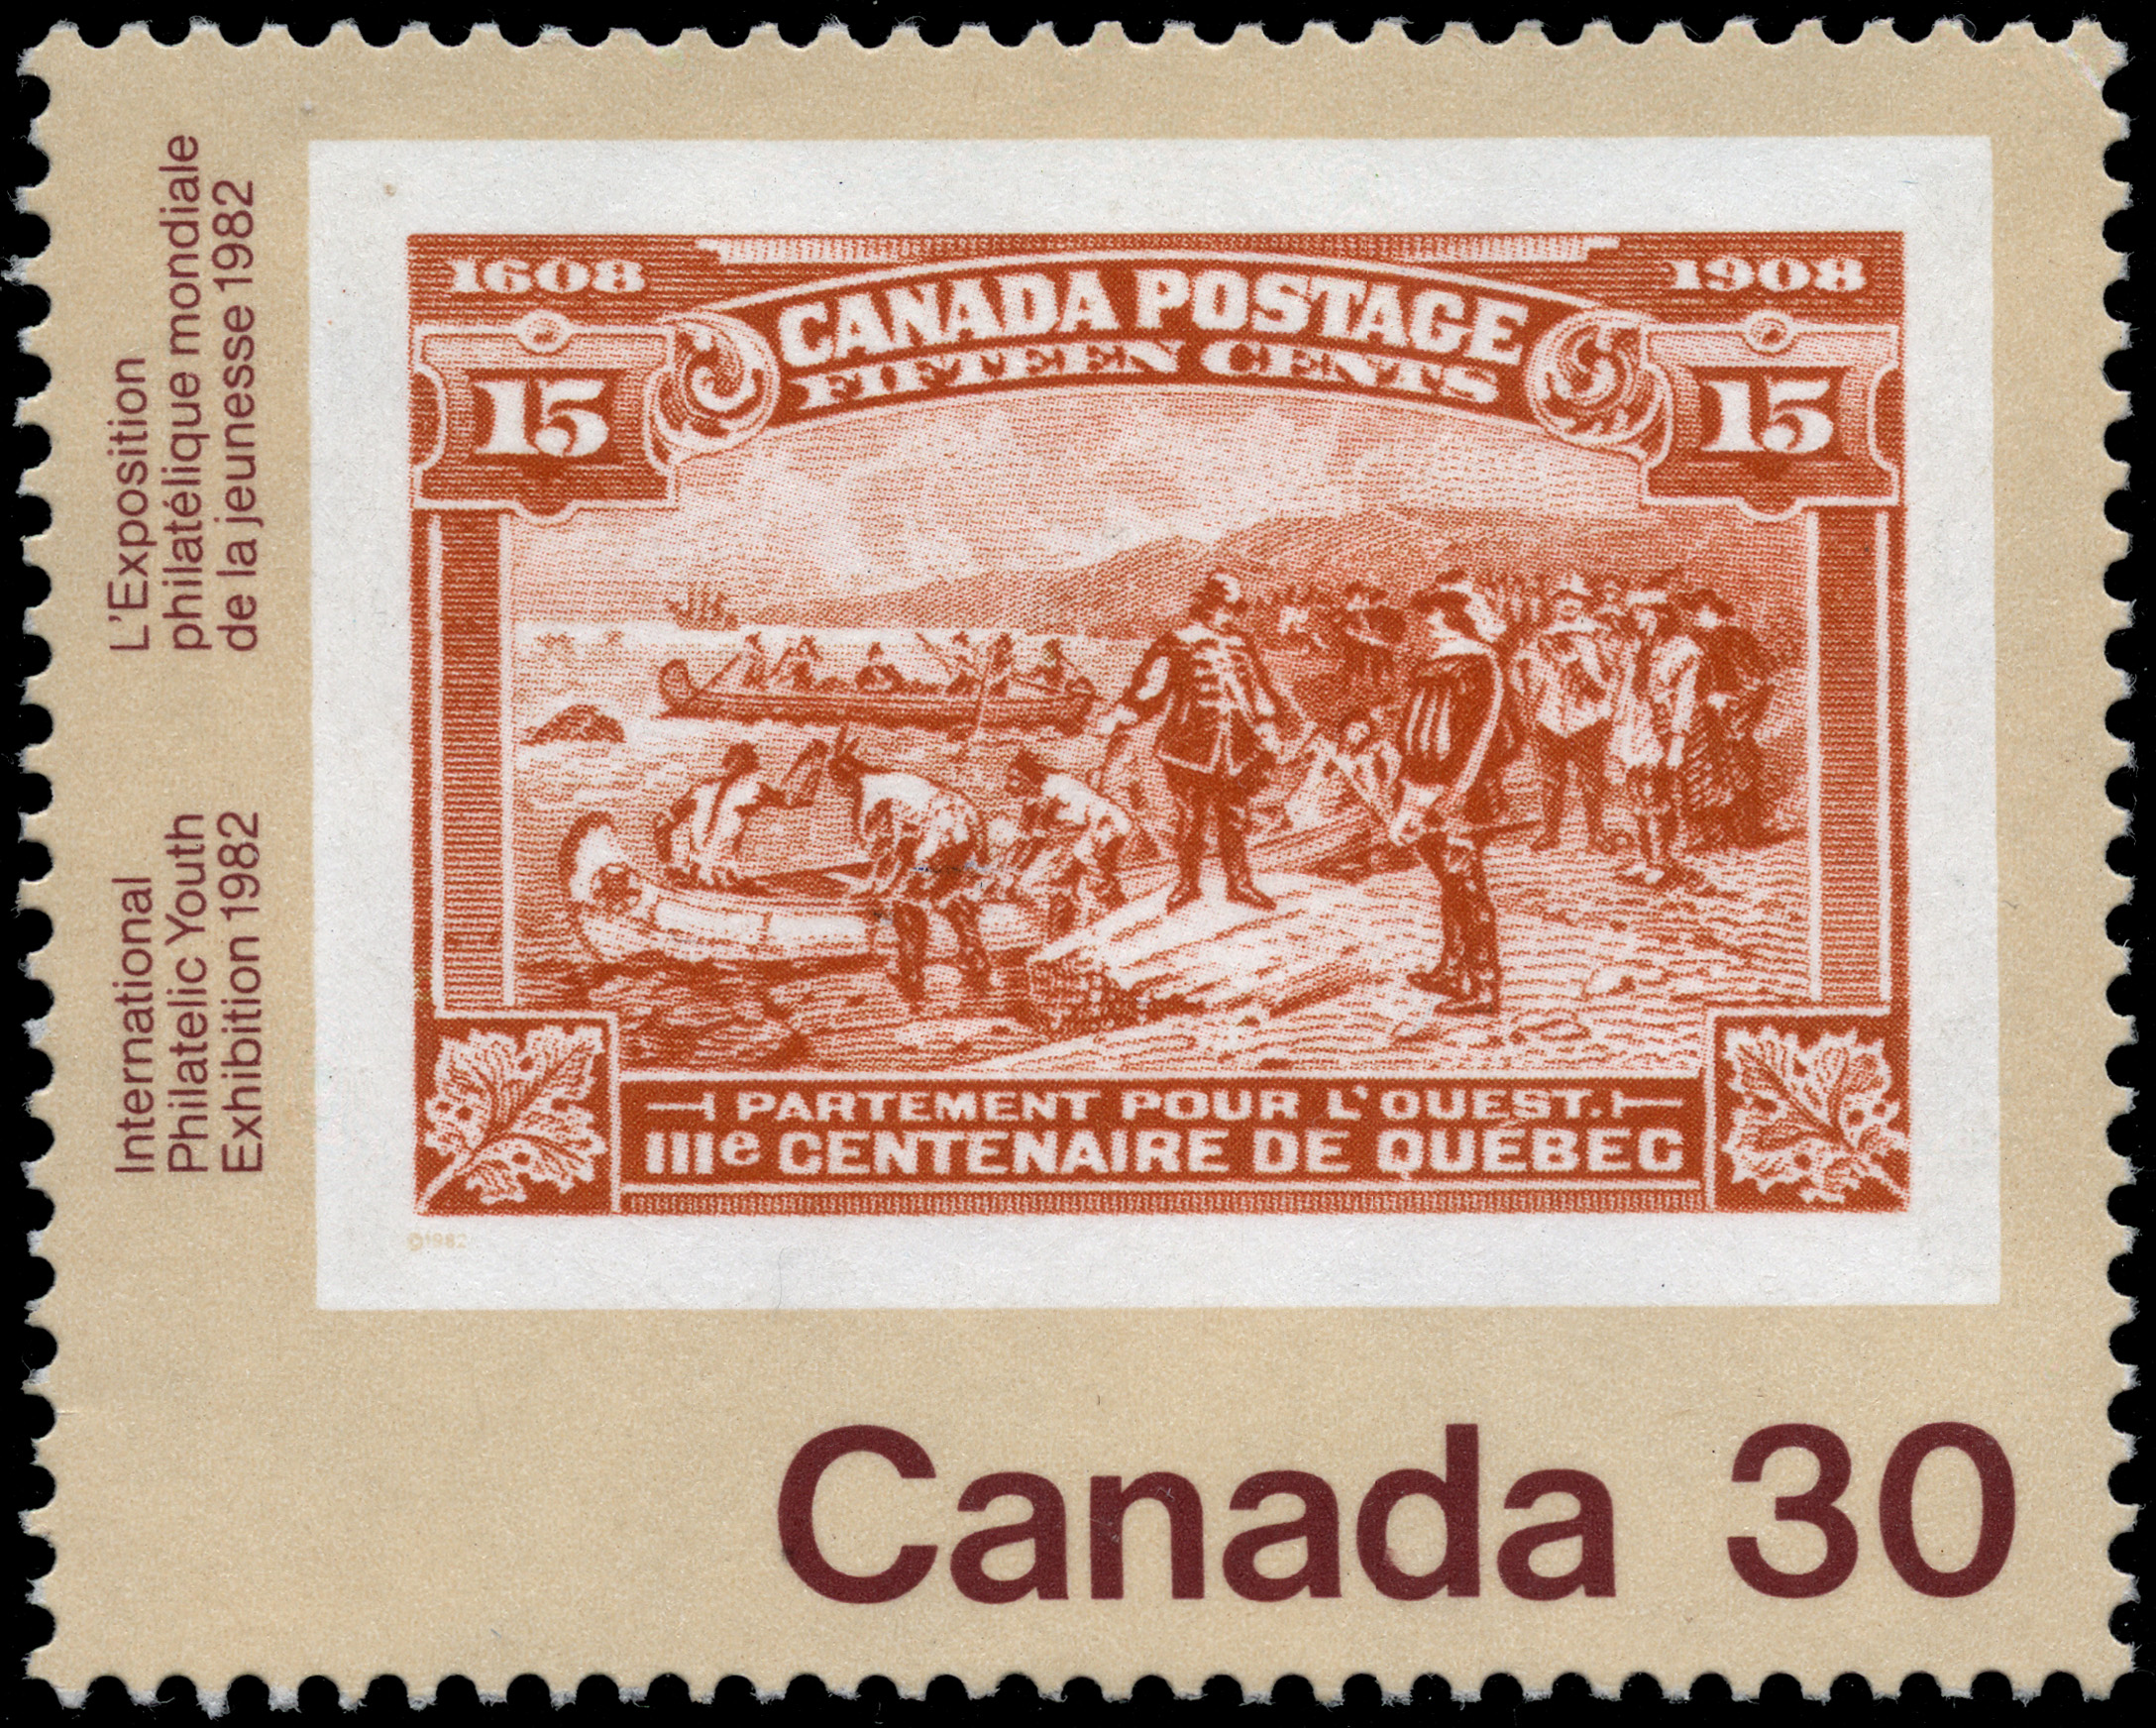 Champlain's Departure, 1908 Canada Postage Stamp